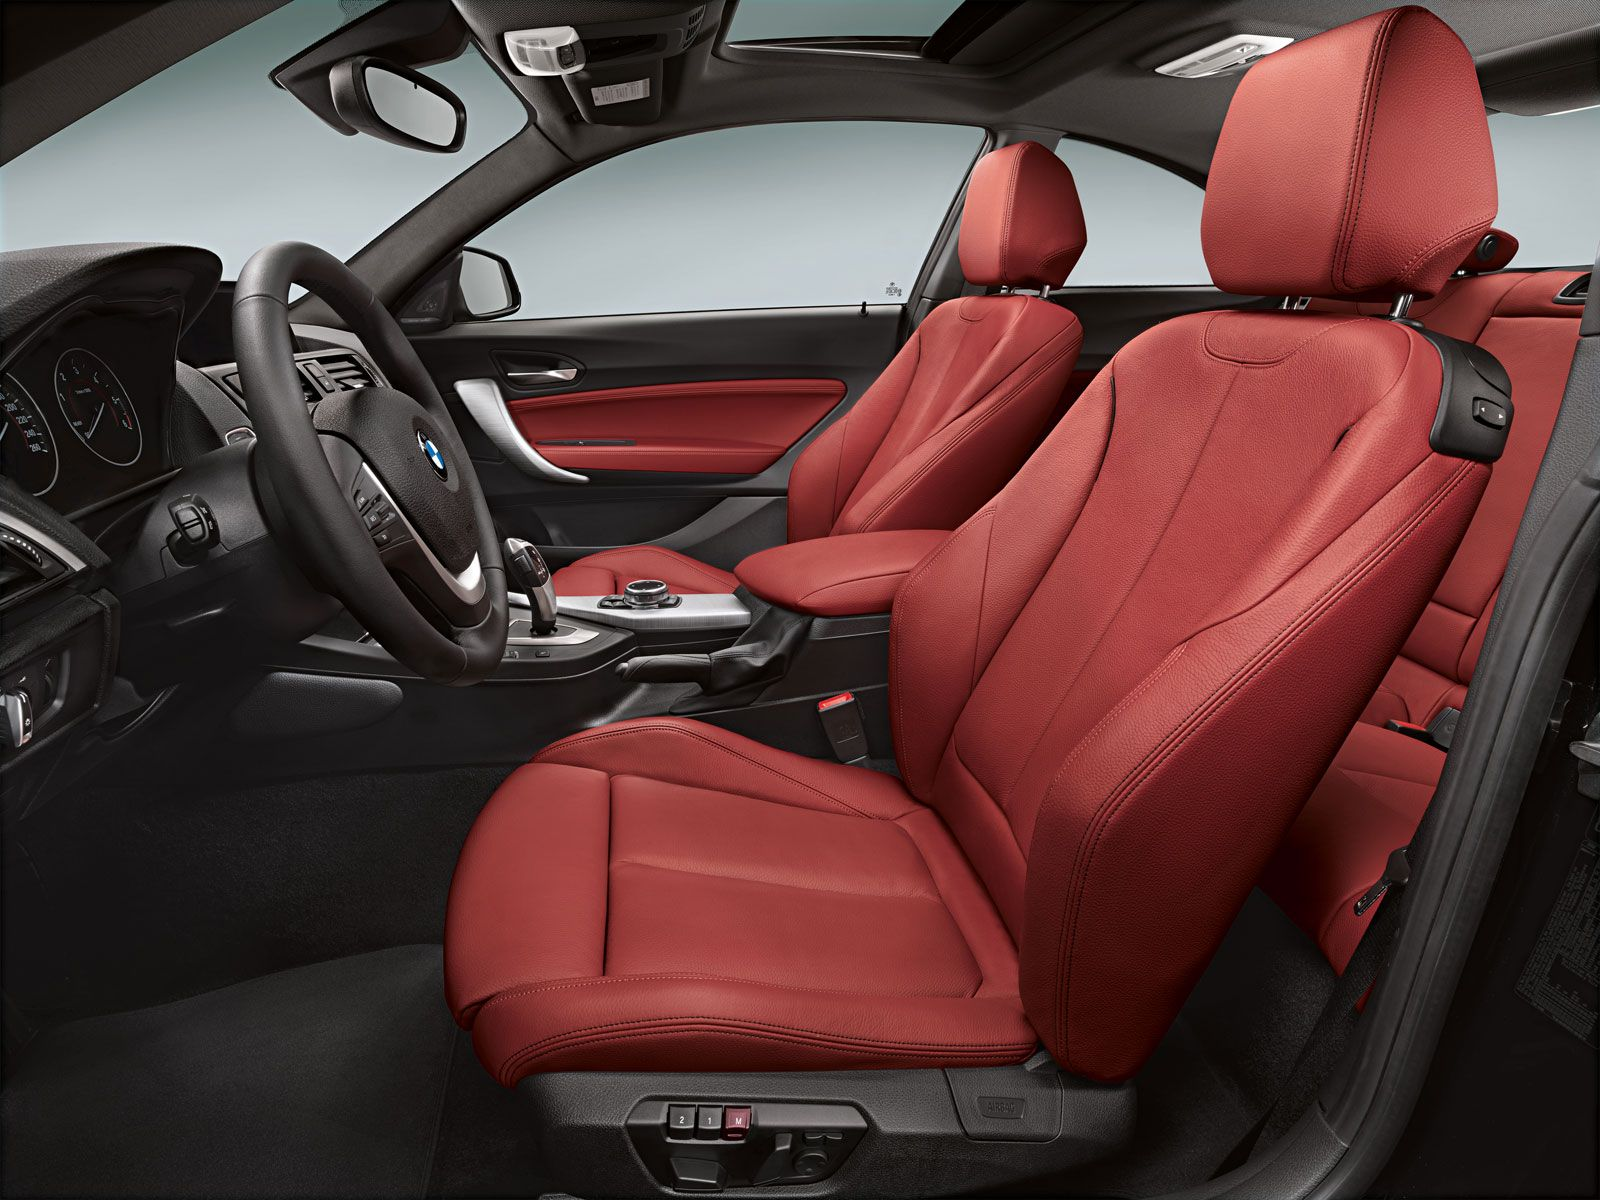 Bmw 2 Series Coupe Transport Auto Interior Red Leather My Ride